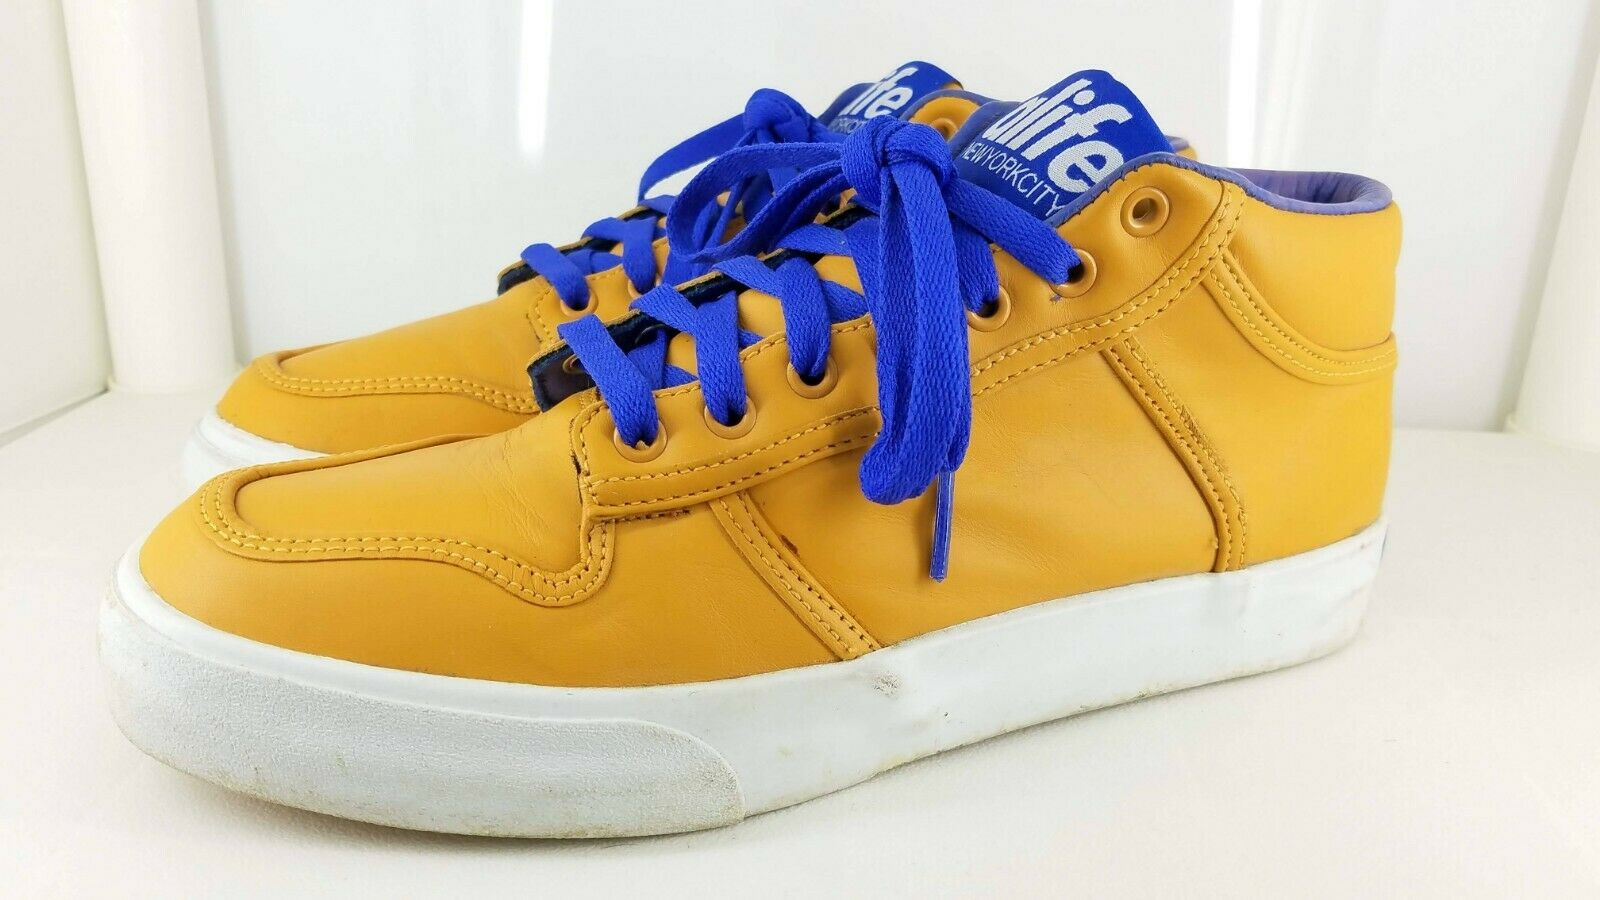 69cebd92f90d9 Alife Everybody Mid Leather Sneakers MEN S SIZE 8 Mustard Purple White